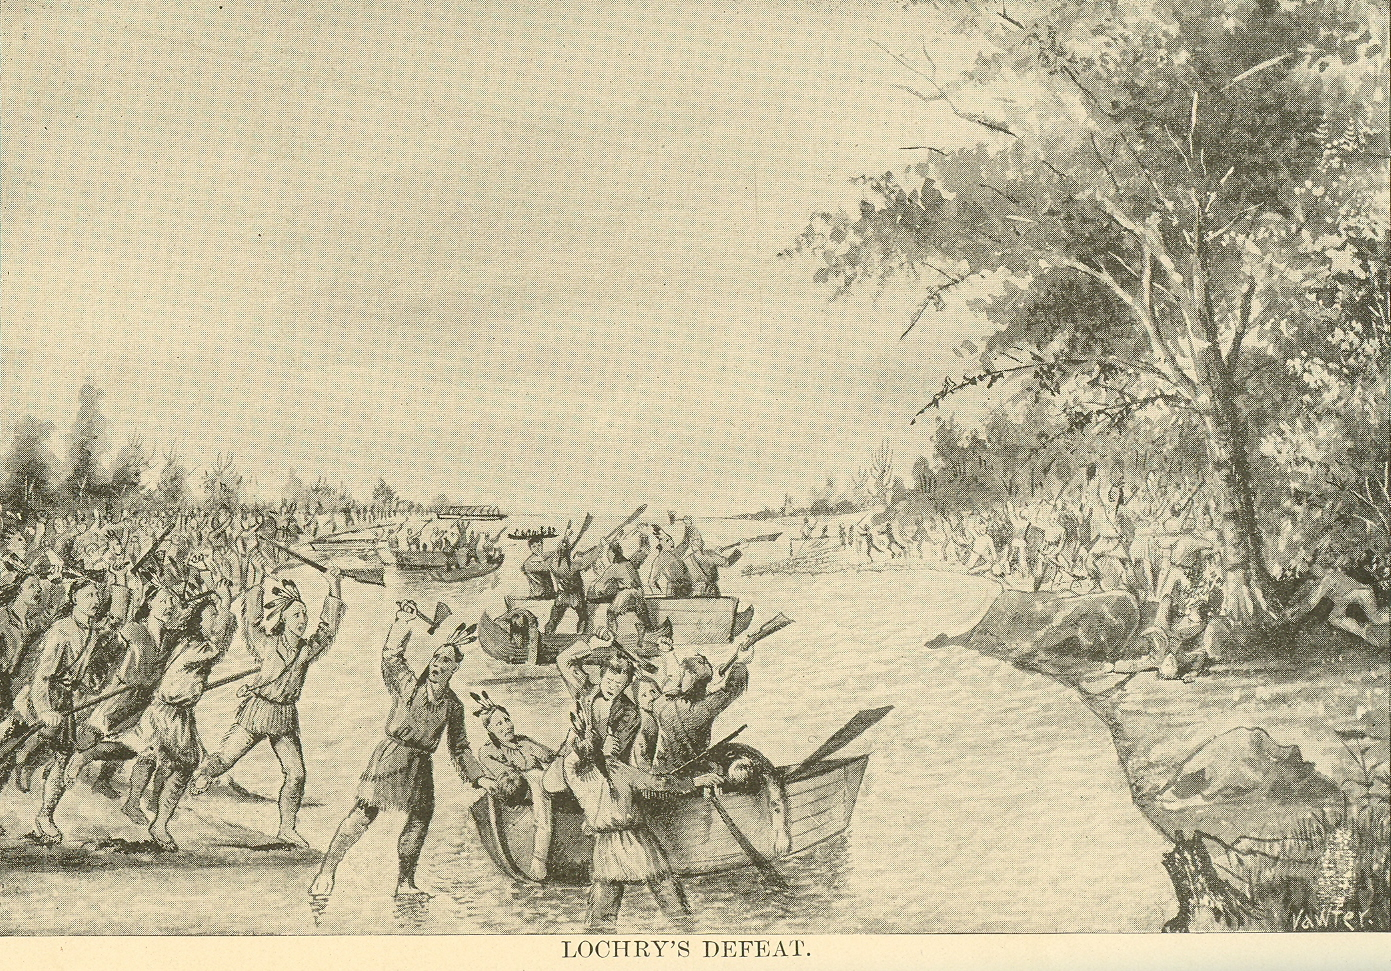 An illustration of Lochry's Defeat